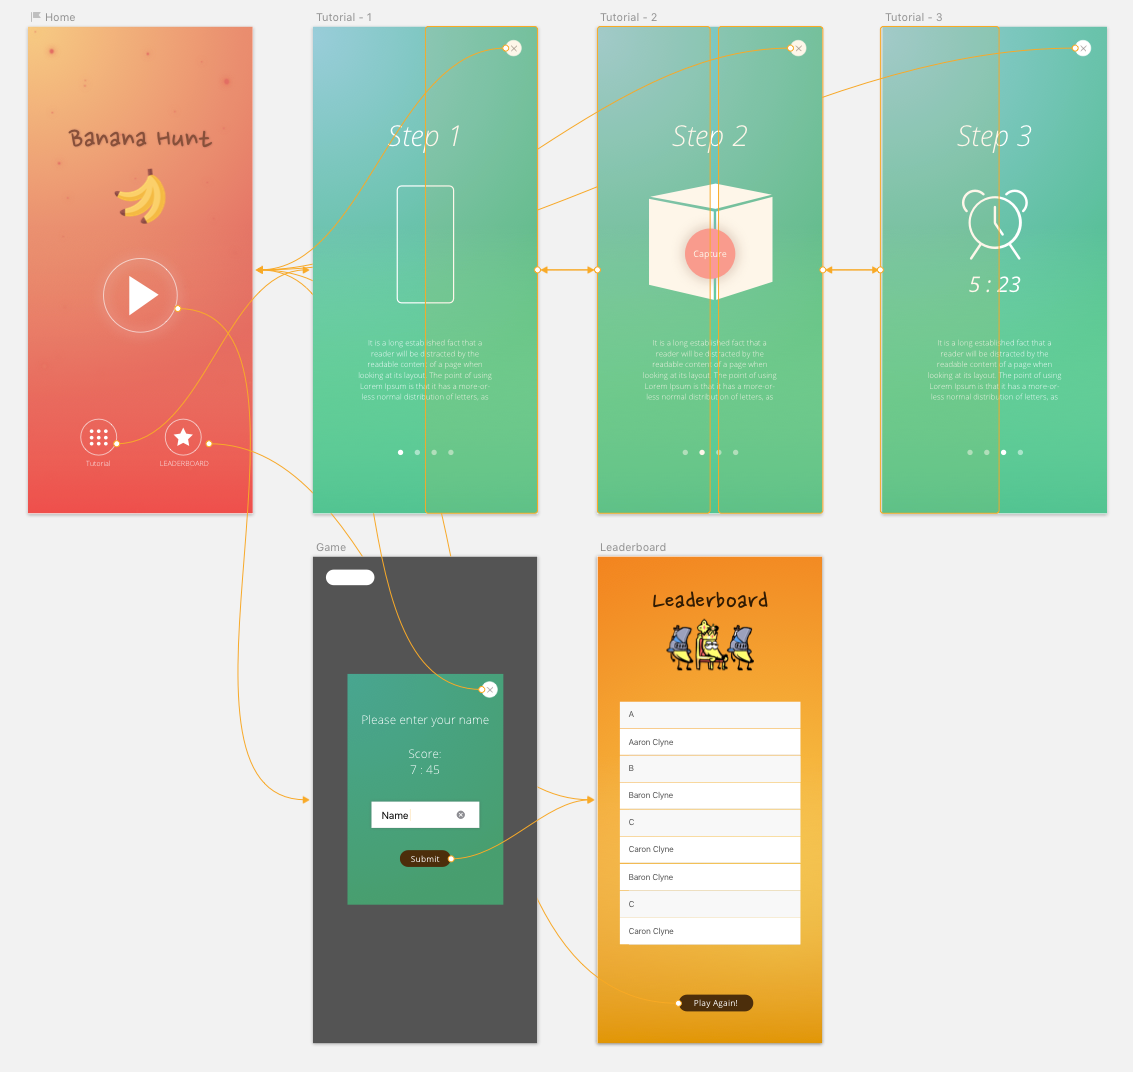 UX Design in Sketch